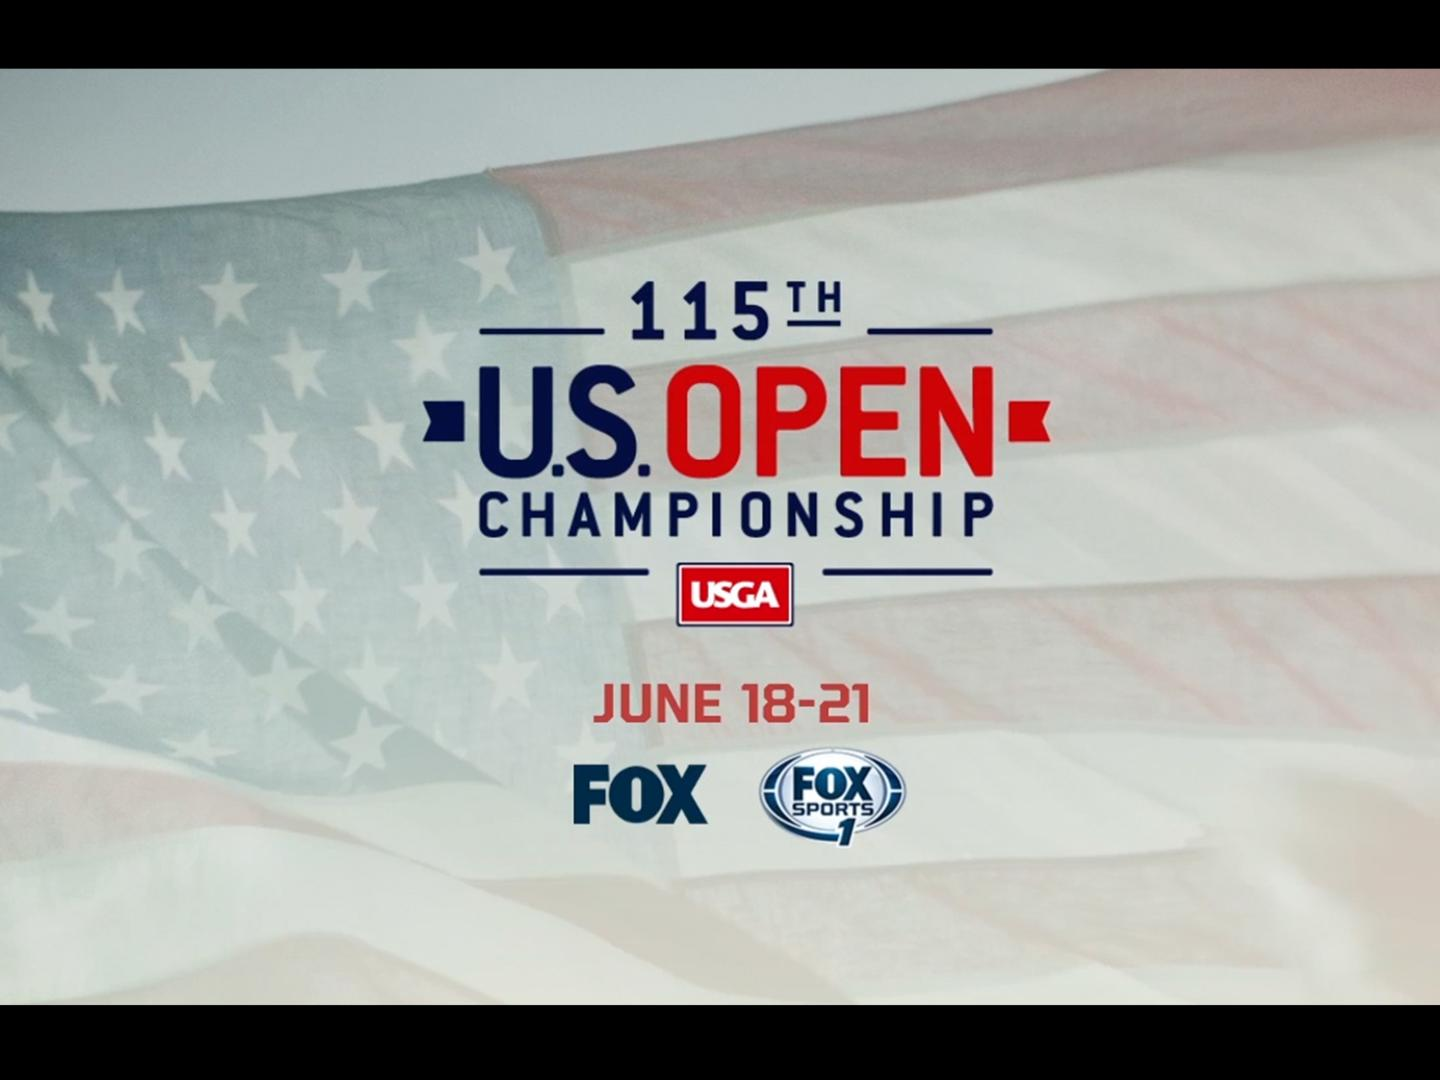 U.S. Open on FOX/FS1